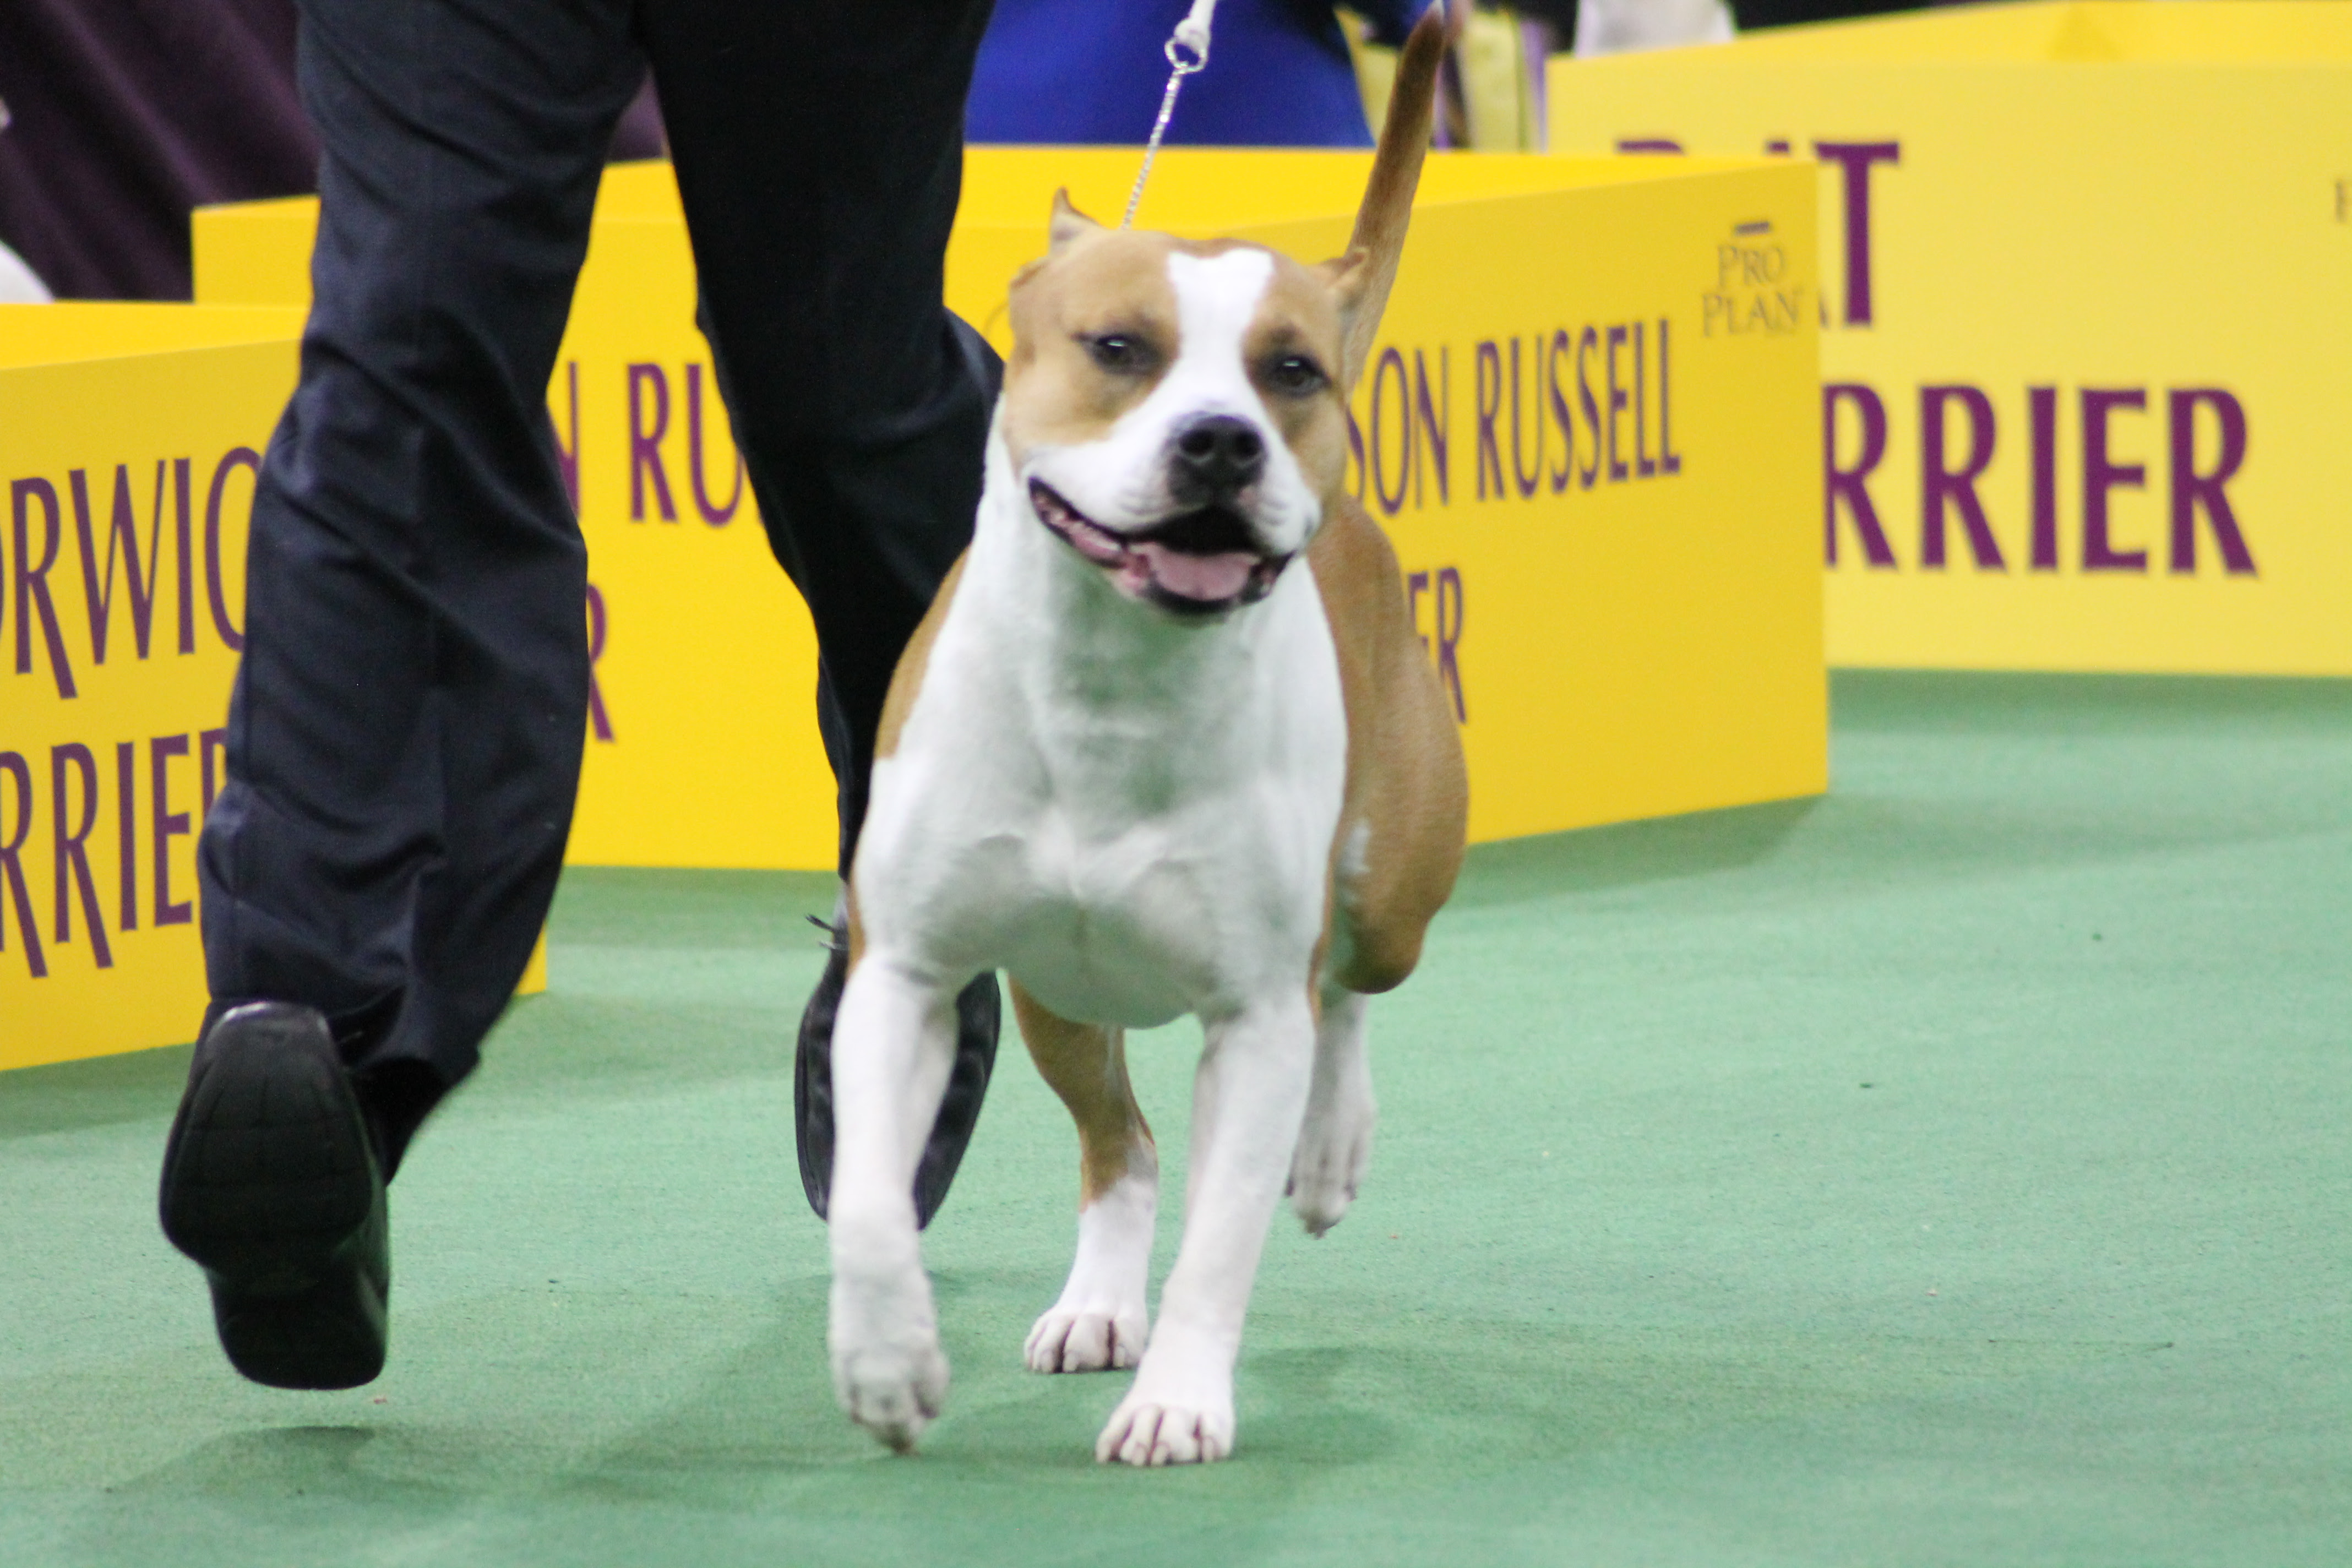 Westminster Dog Show Staffordshire Terrier